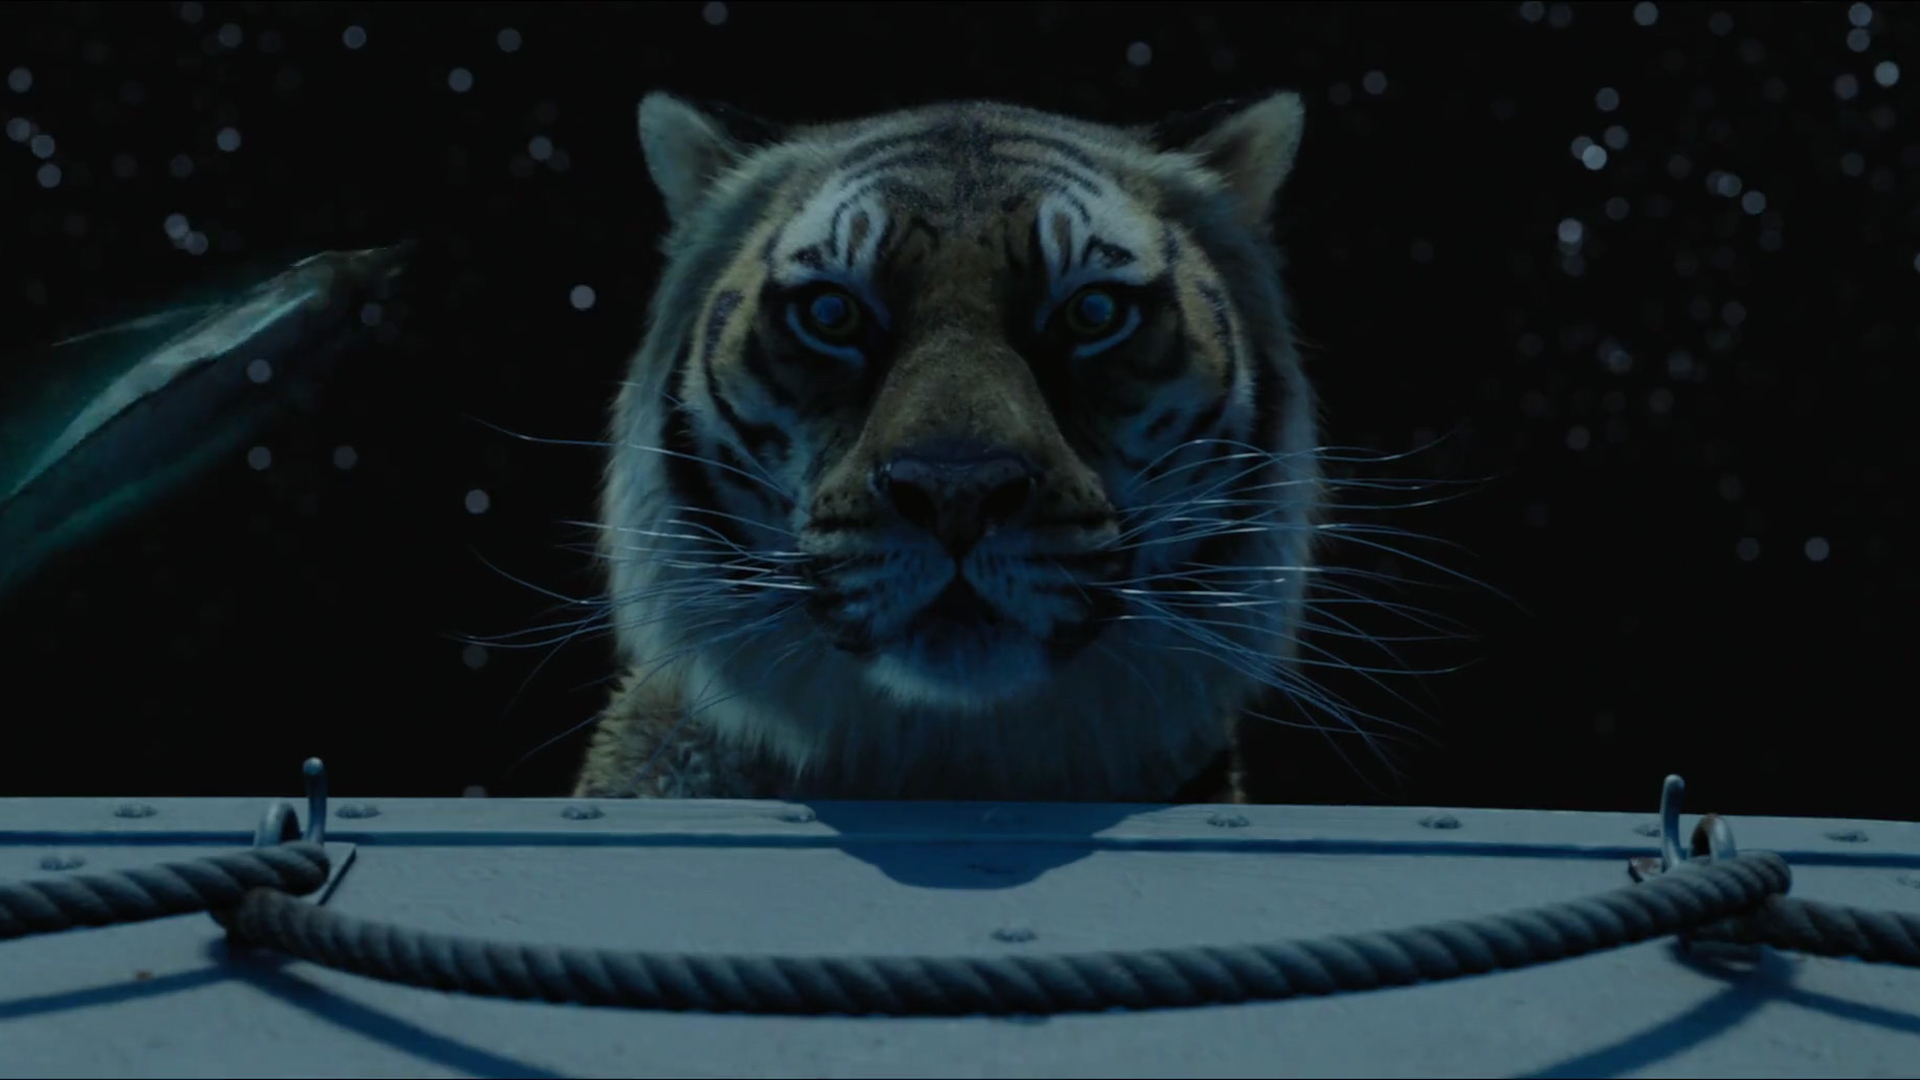 life of pi Life of pi is a canadian fantasy adventure novel by yann martel published in 2001 the protagonist is piscine molitor pi patel, an indian boy from pondicherry who .